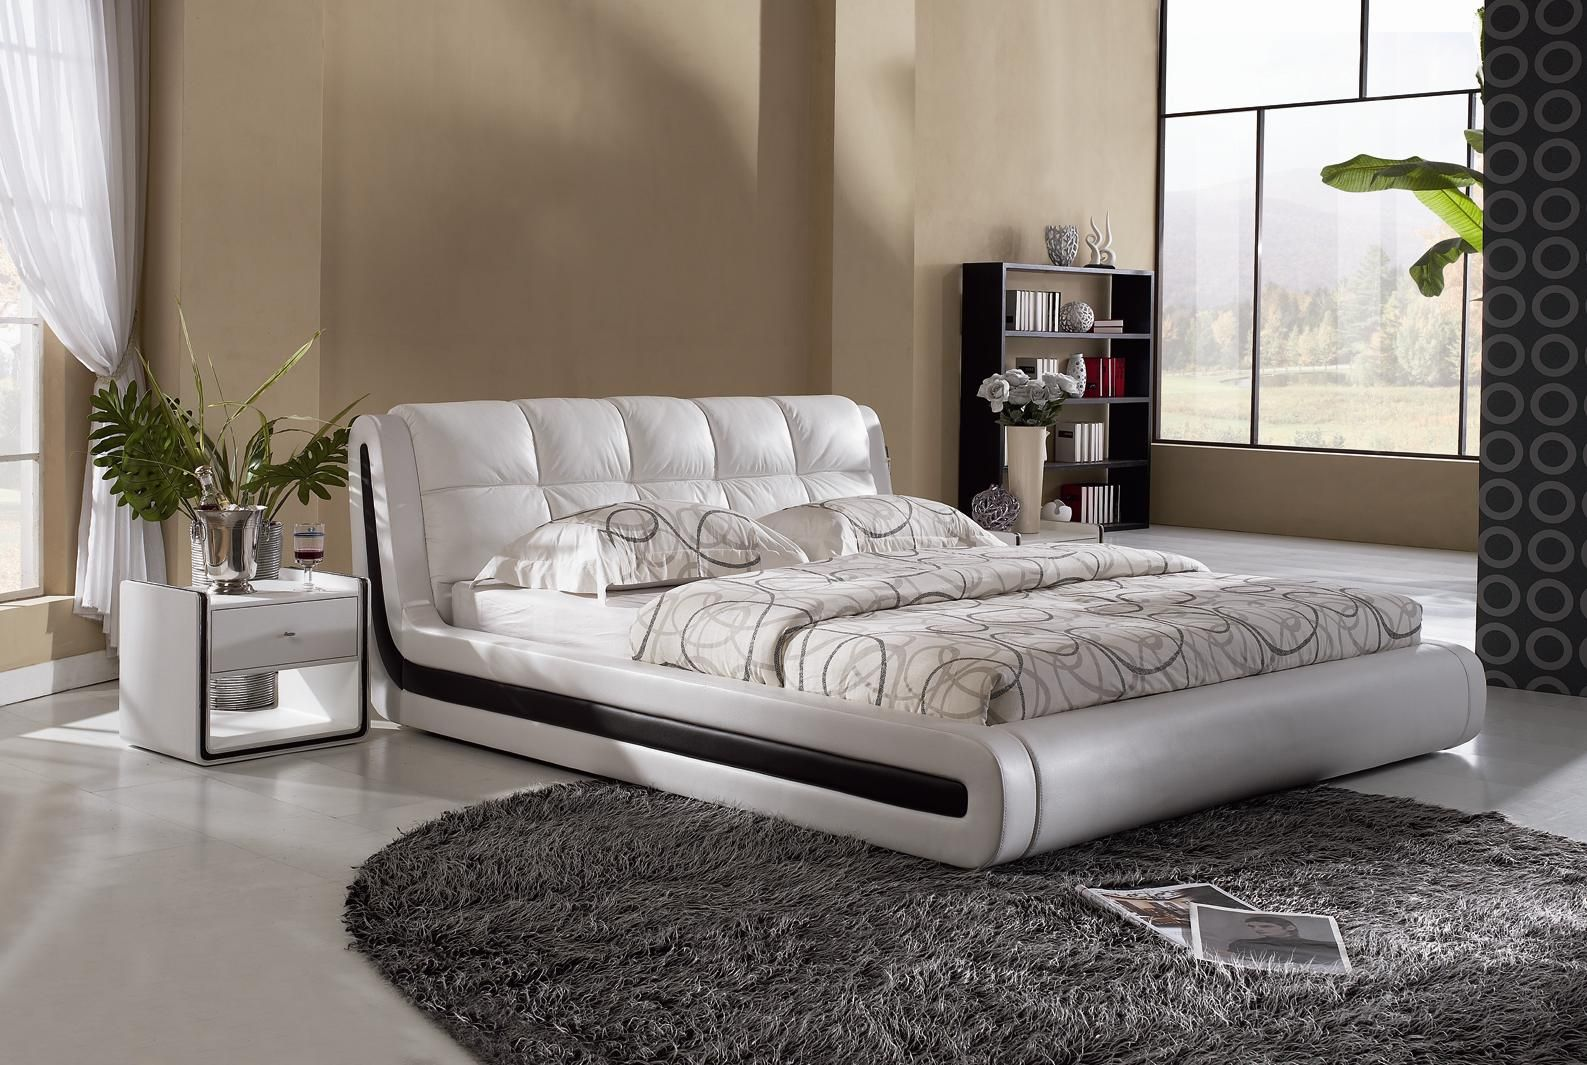 Modern bed designs home interior designer adult bedroom for Gourmet furniture bed design